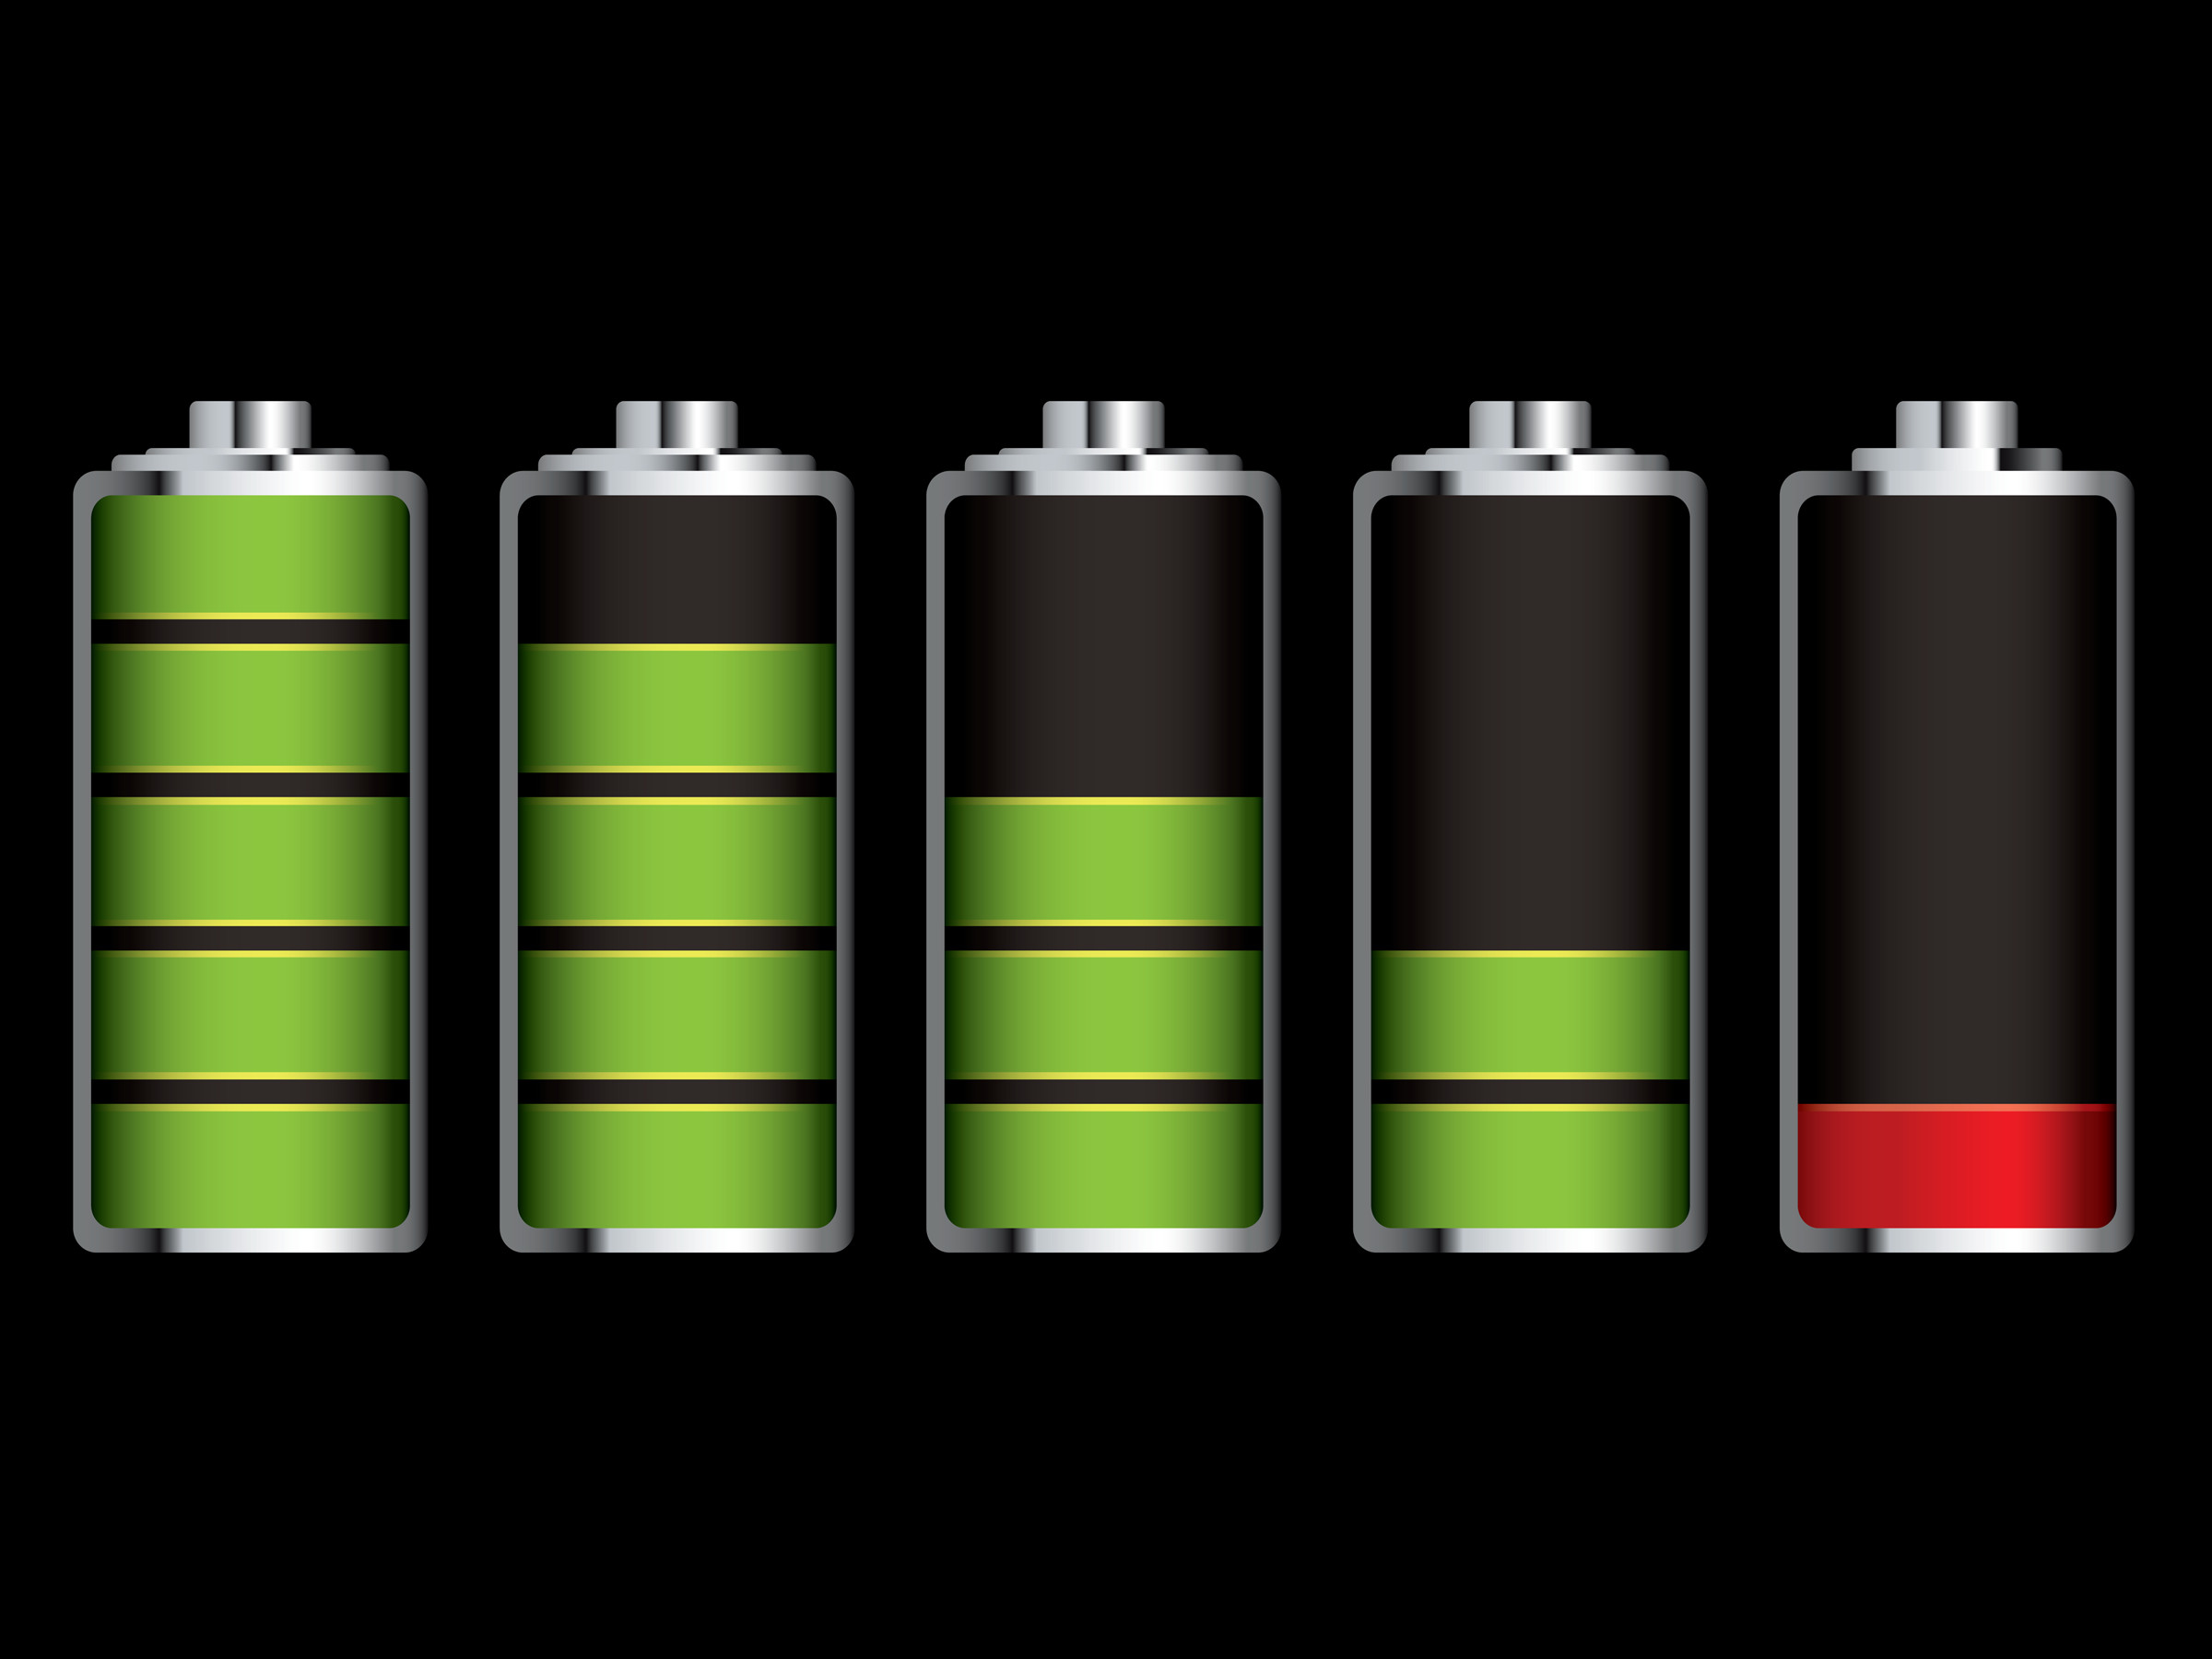 Korea Sees Diminished Status as World's #1 Battery Supplier